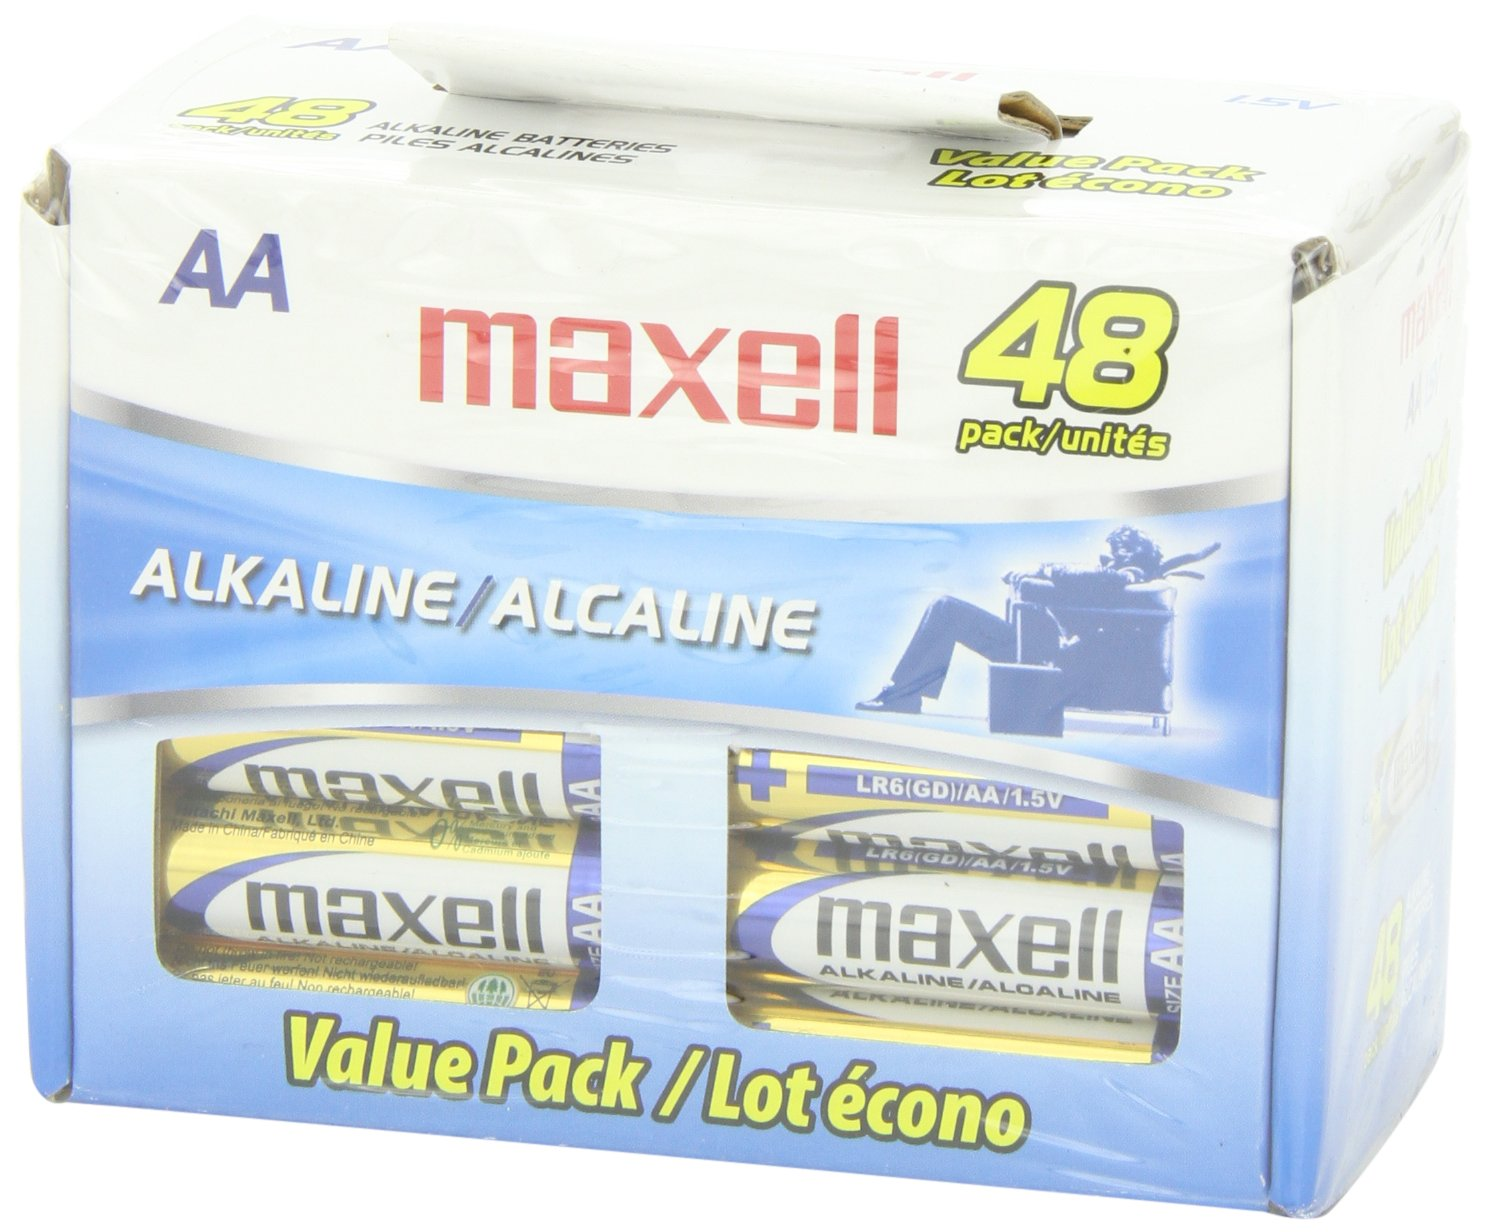 Maxell 723443 Alkaline Battery AA Cell 48-Pack by Maxell